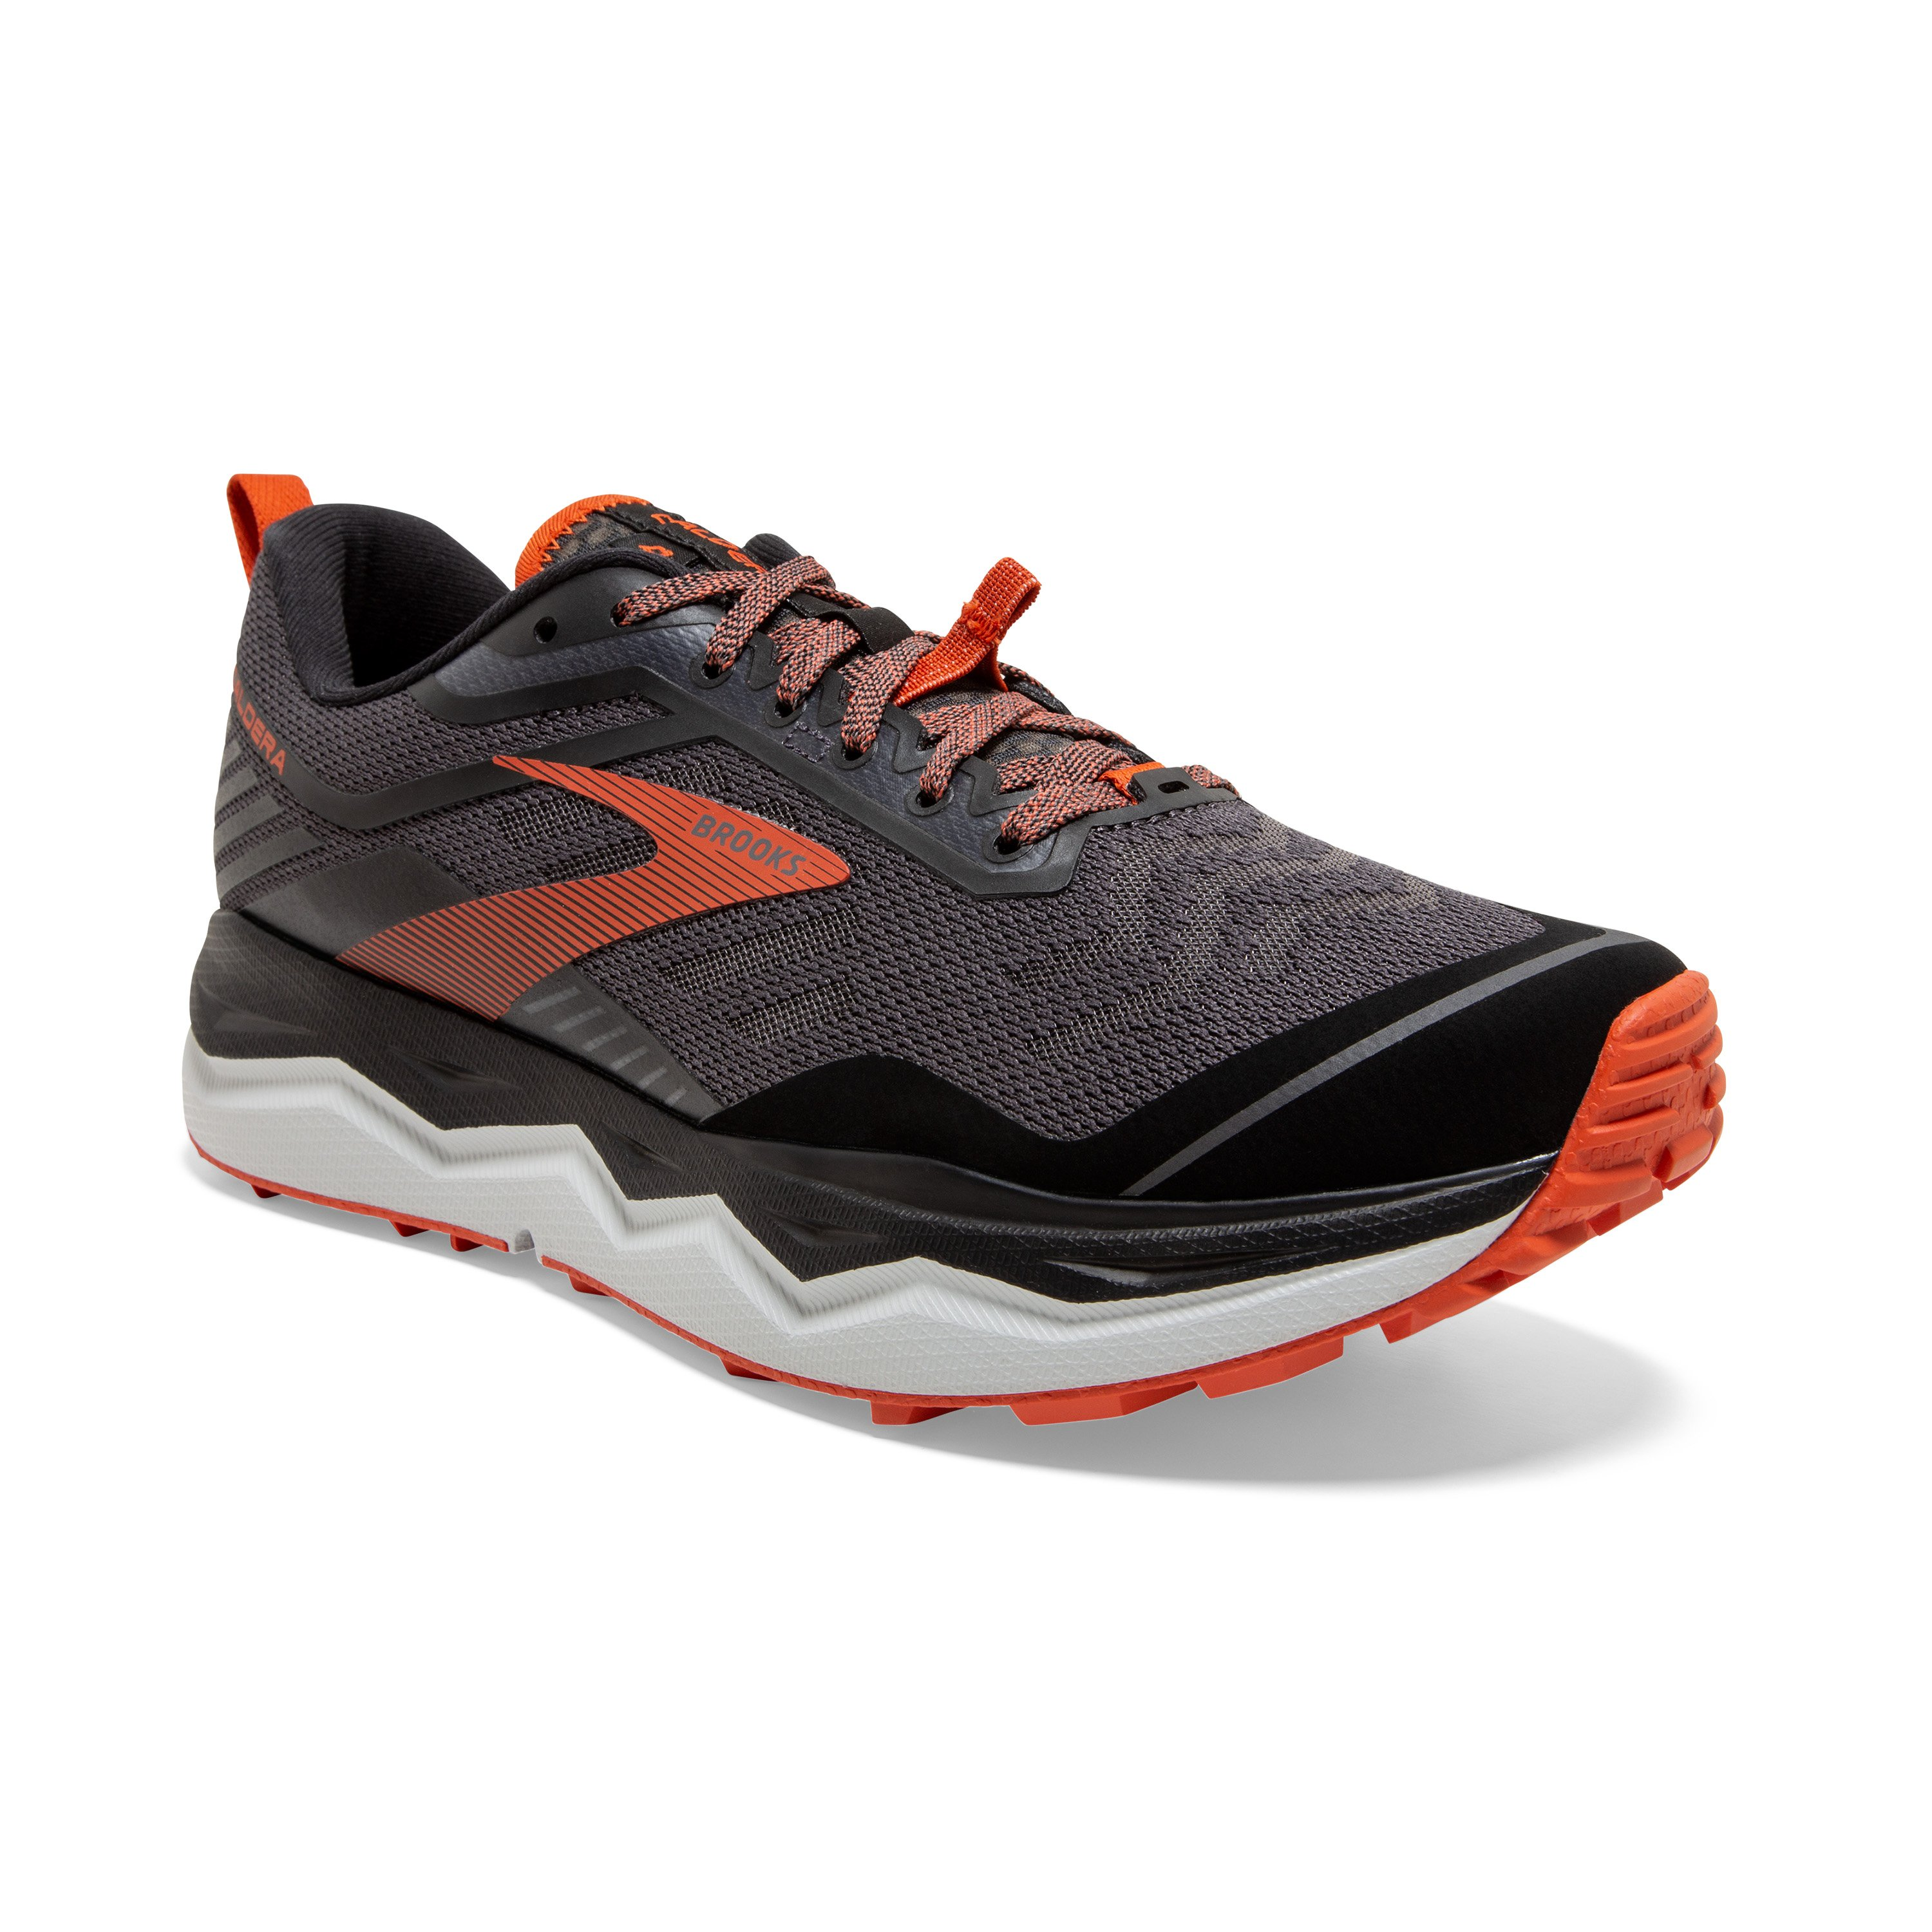 Buy Brooks Running Shoes Online